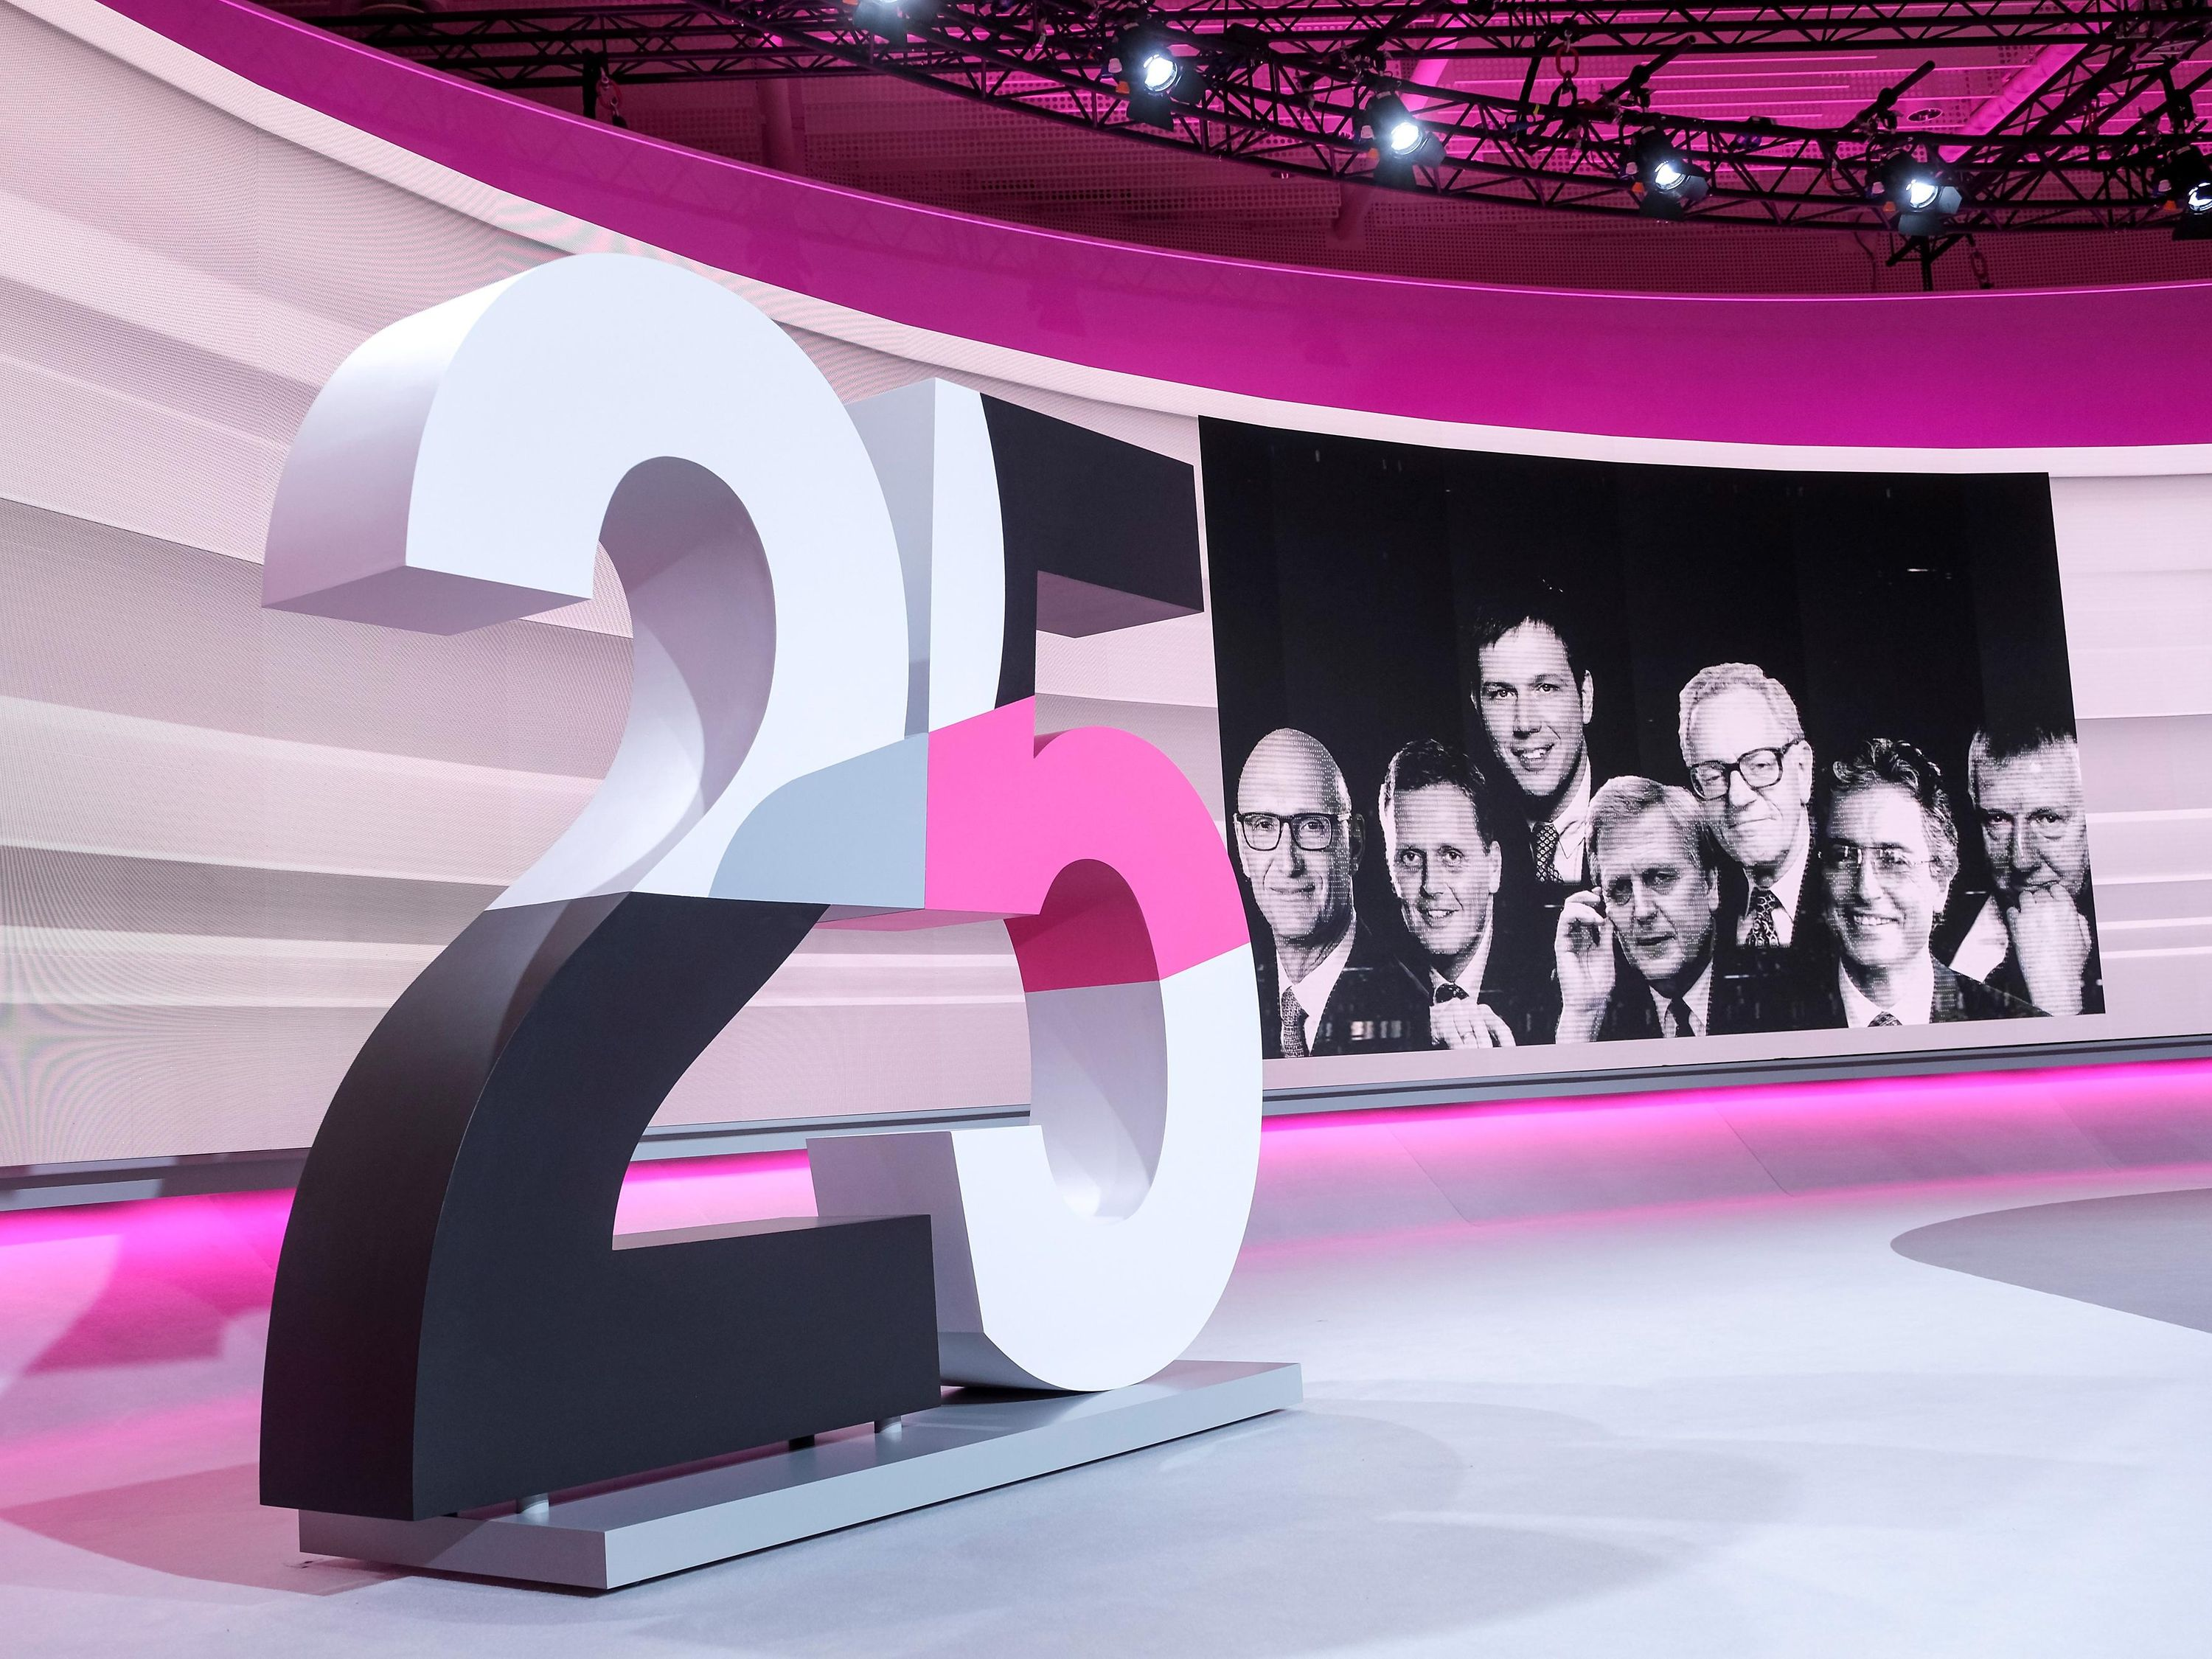 Deutsche Telekom looks back on 25 years of success.